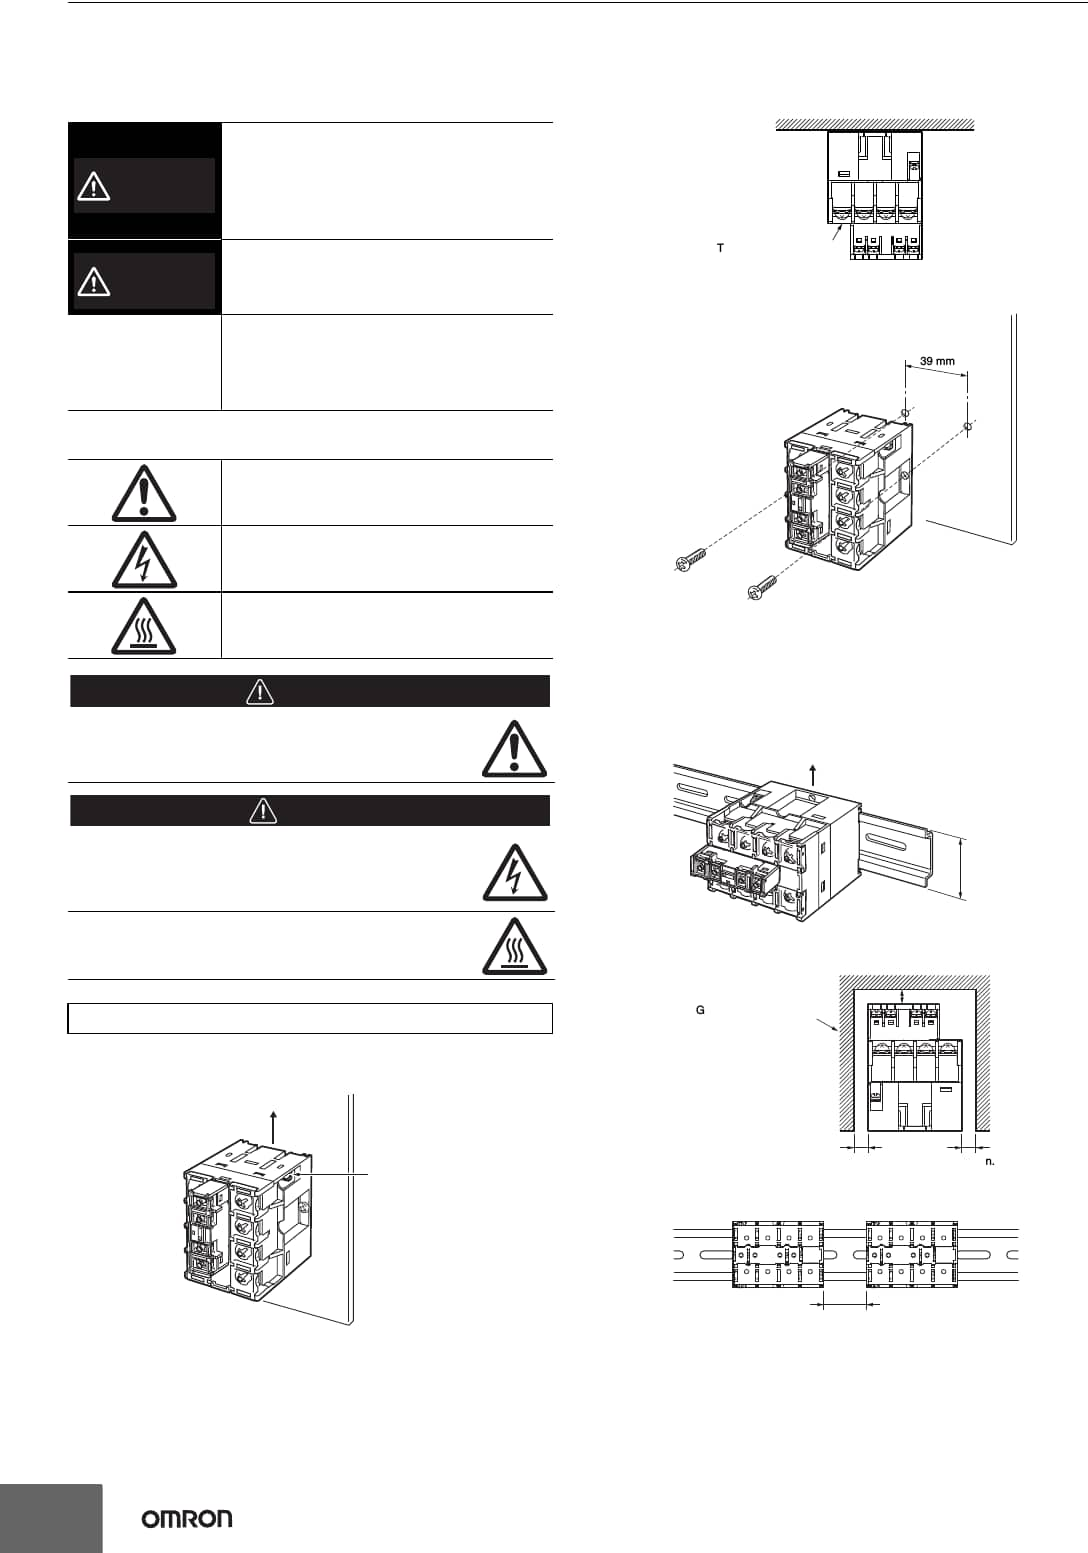 hight resolution of g7z series datasheet omron automation and safety digikey supply us 0 62 0 69 omron omron on 5 terminal relay diagram omron